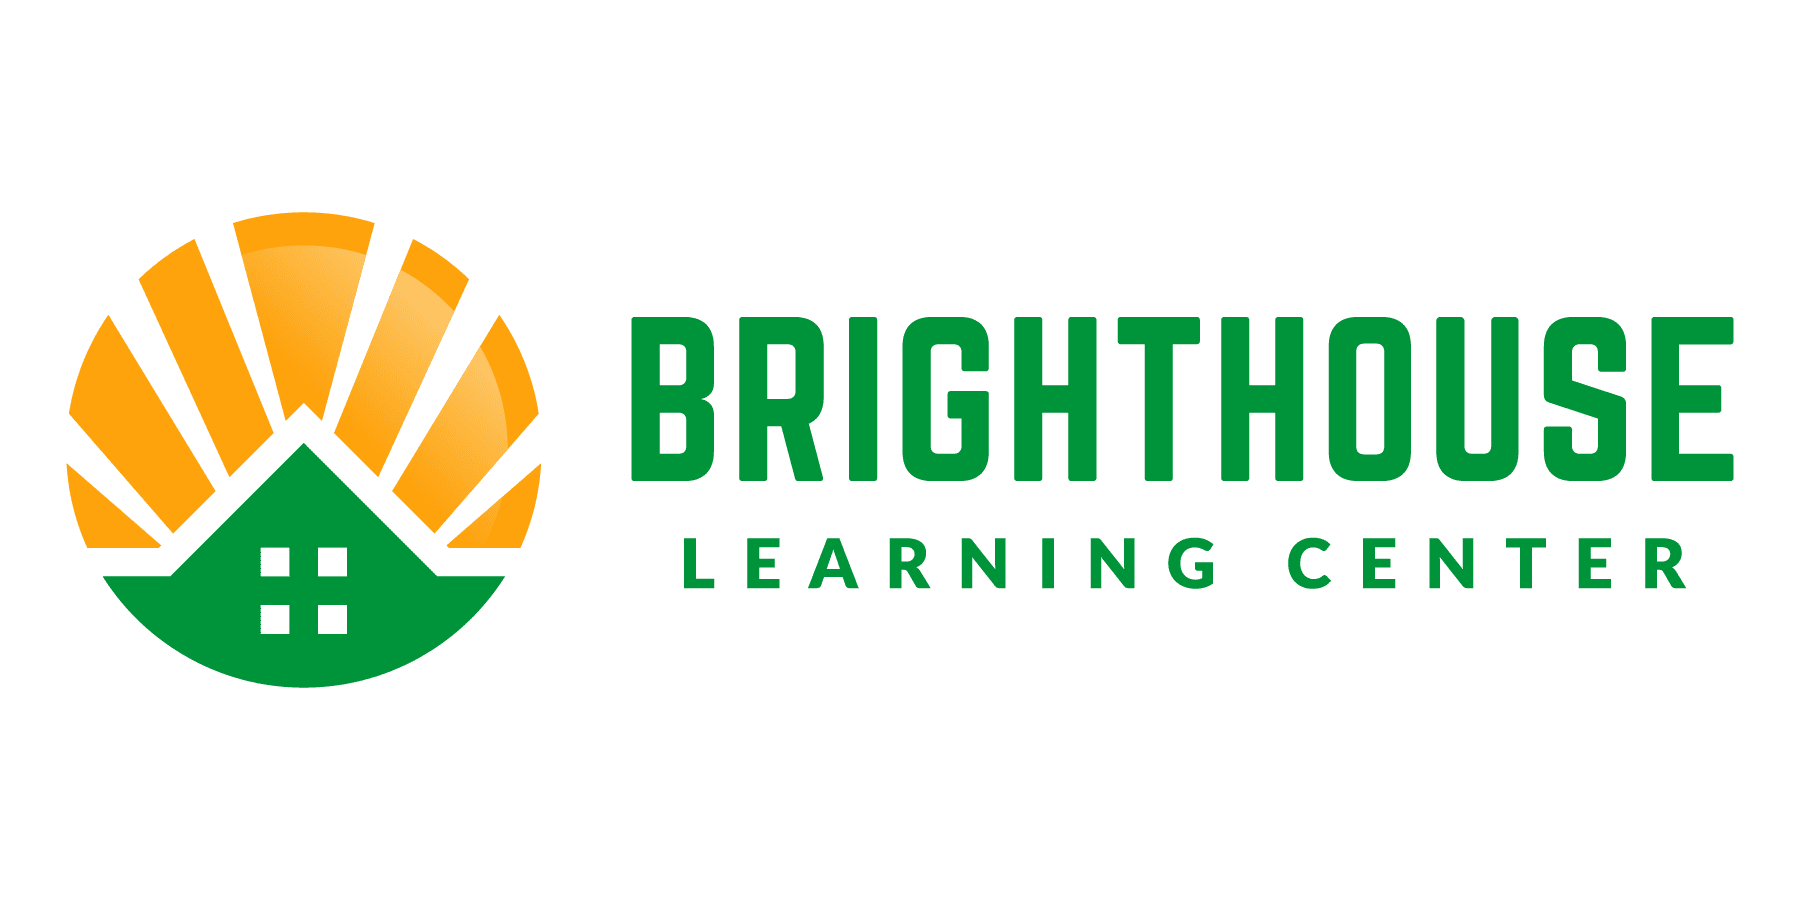 Brighthouse Learning Center